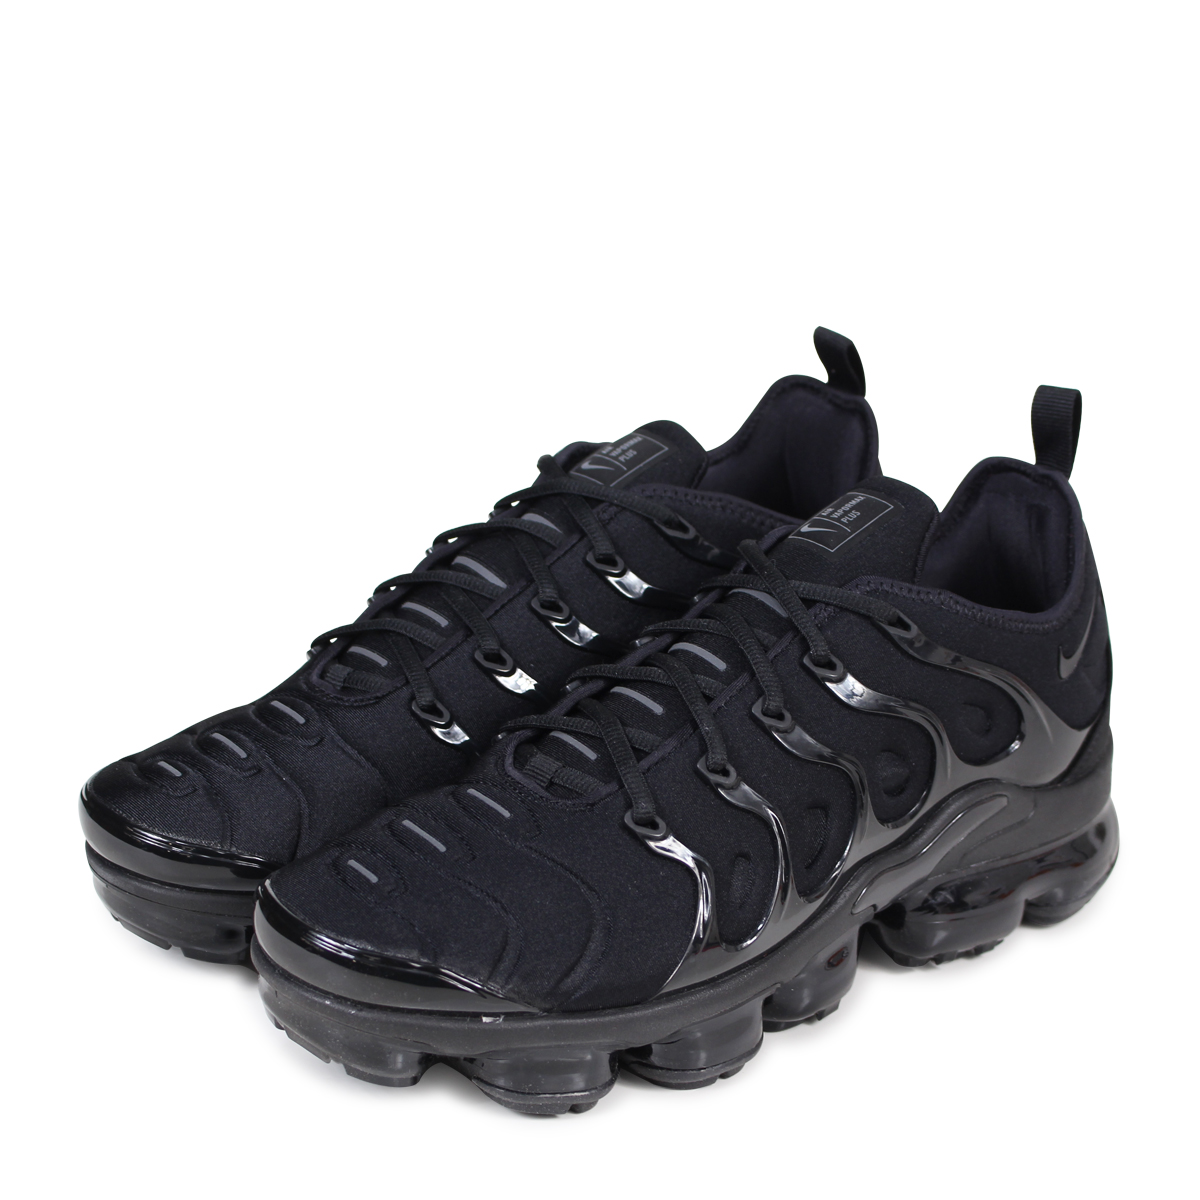 nike air vapormax plus - men shoes